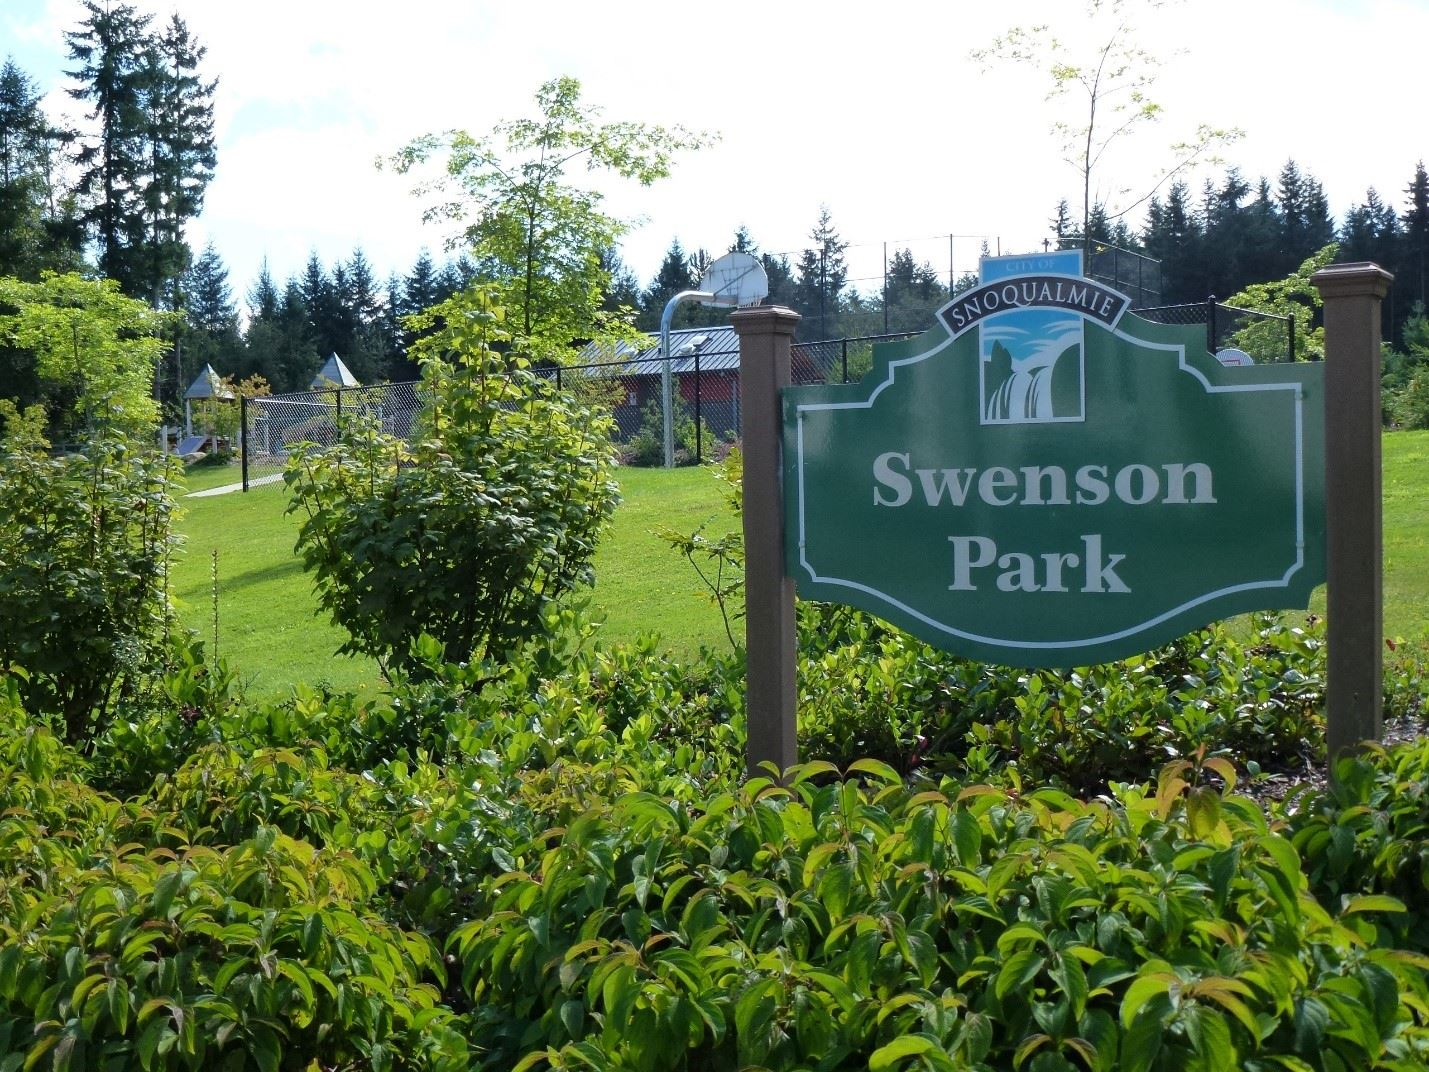 This is an image of Swenson Park.